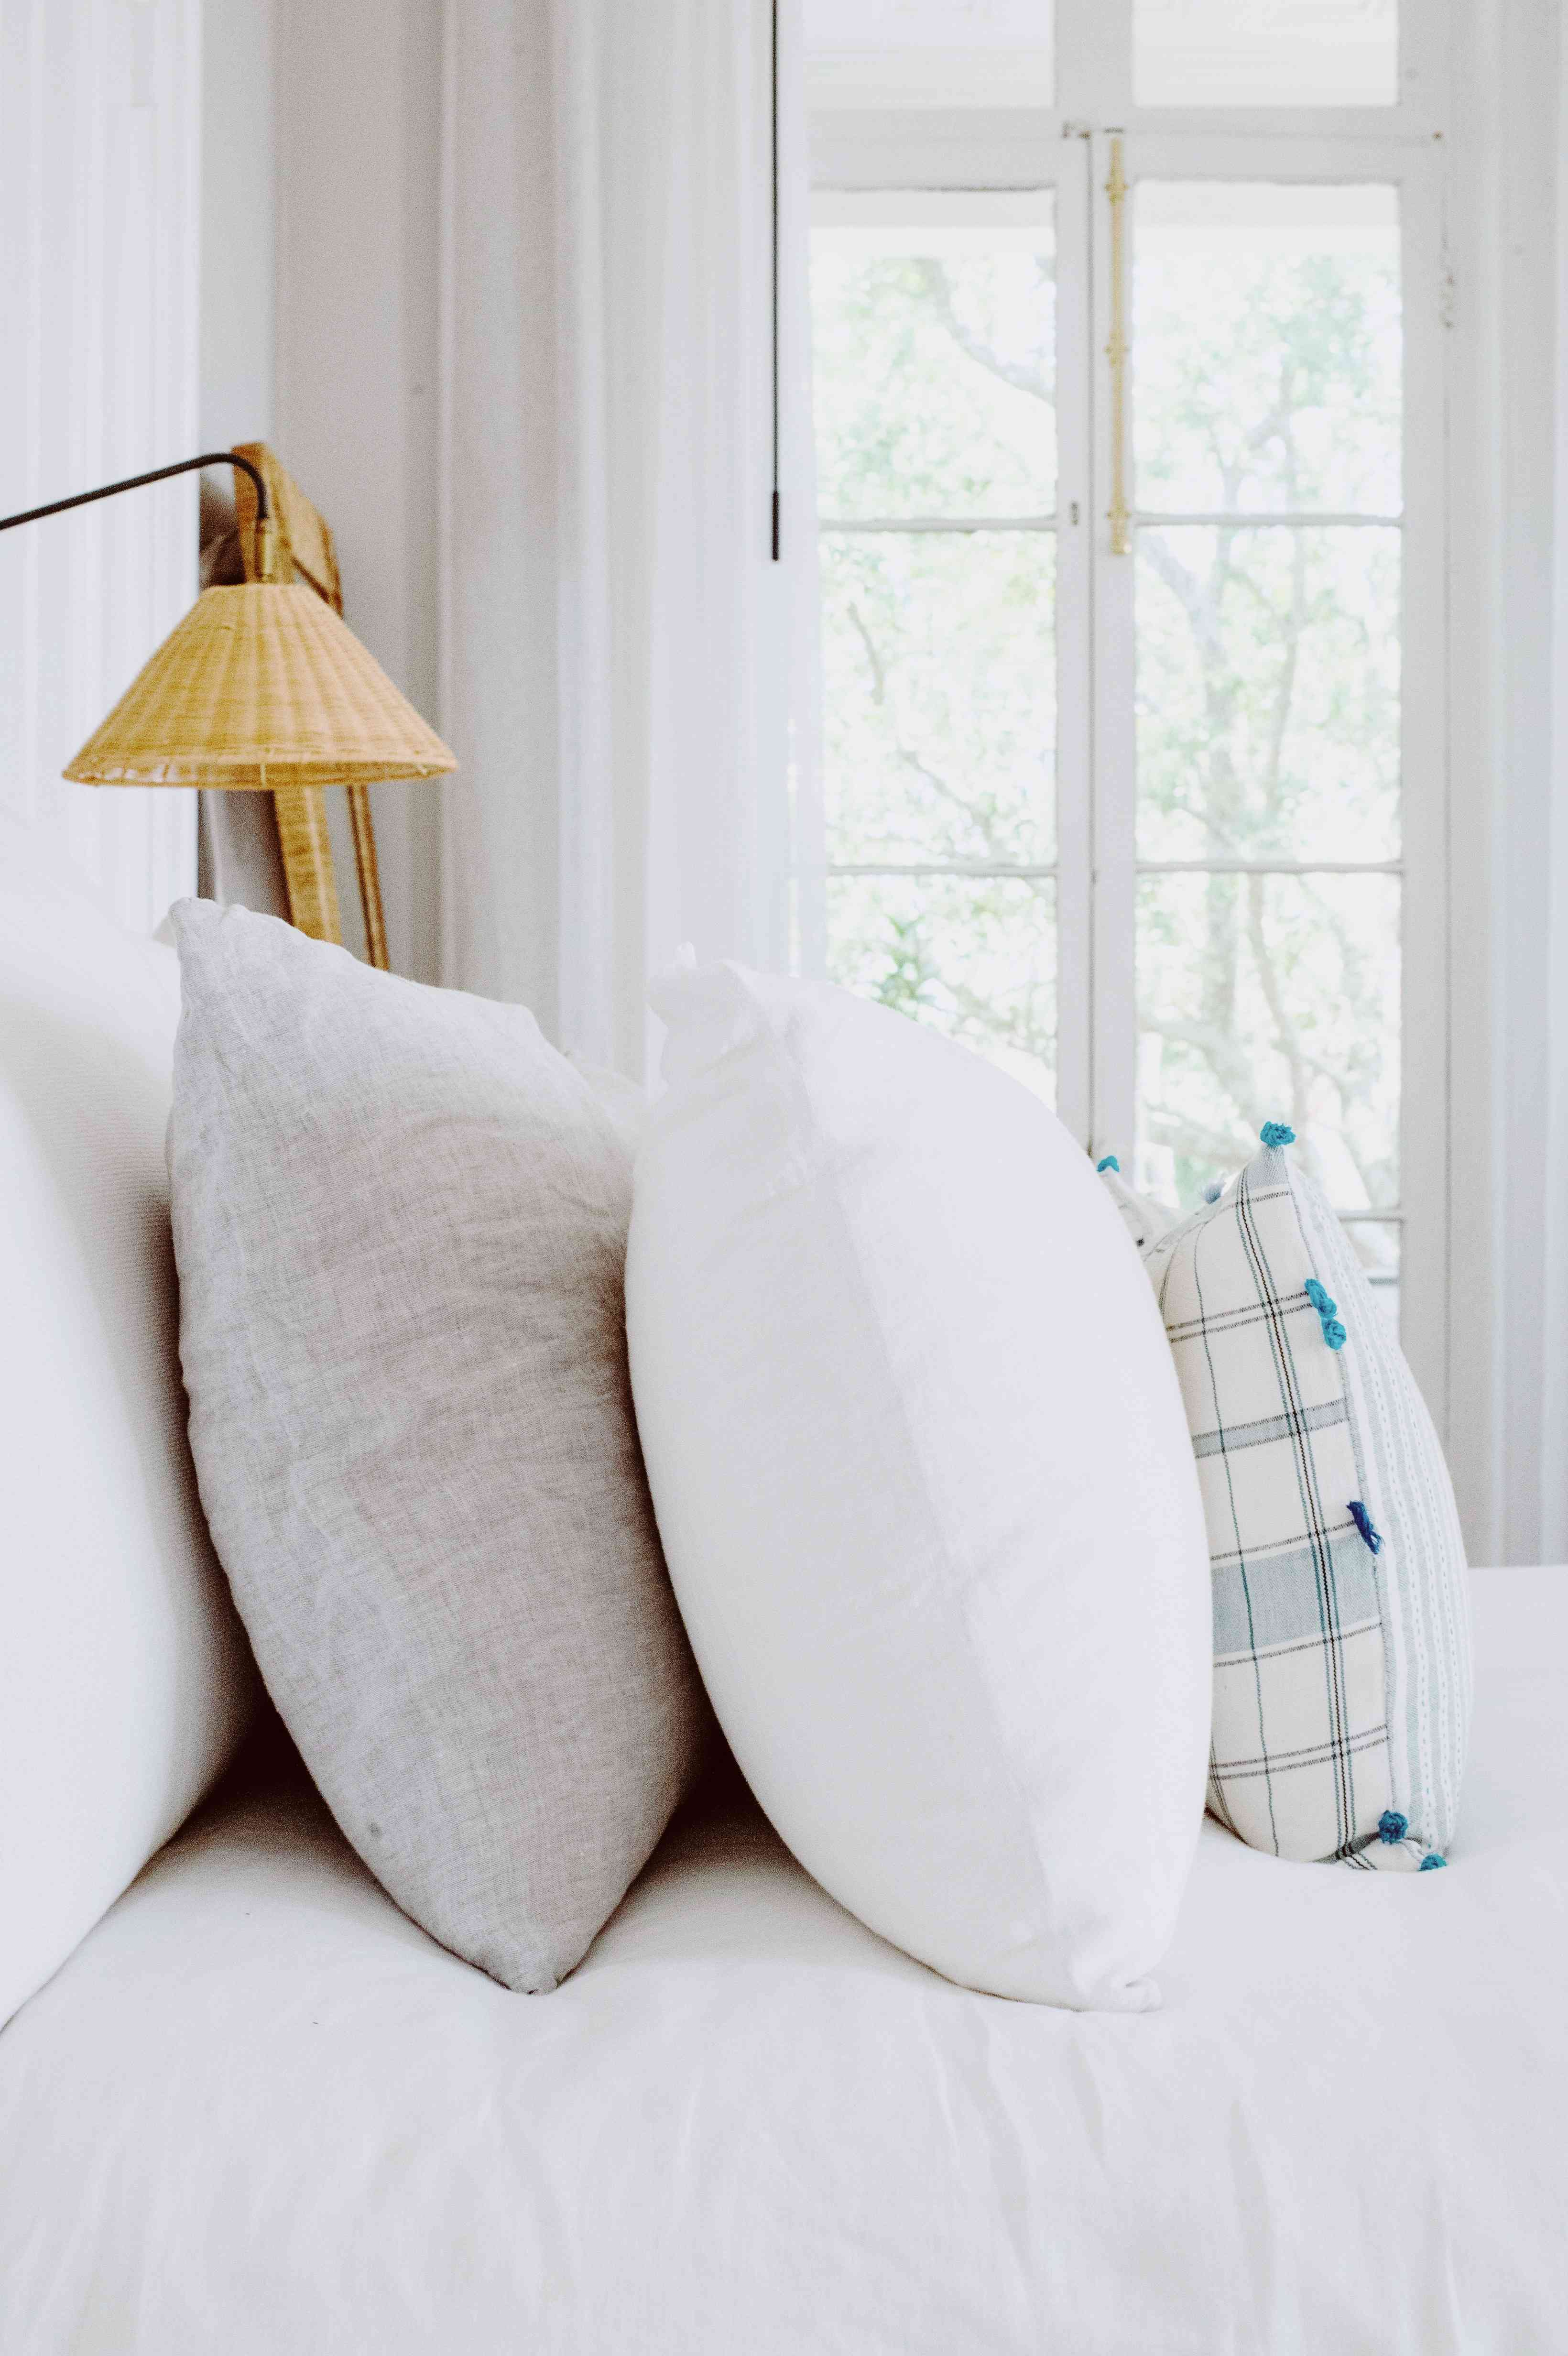 Amanda Greeley home tour - pillows stacked on bed in bedroom